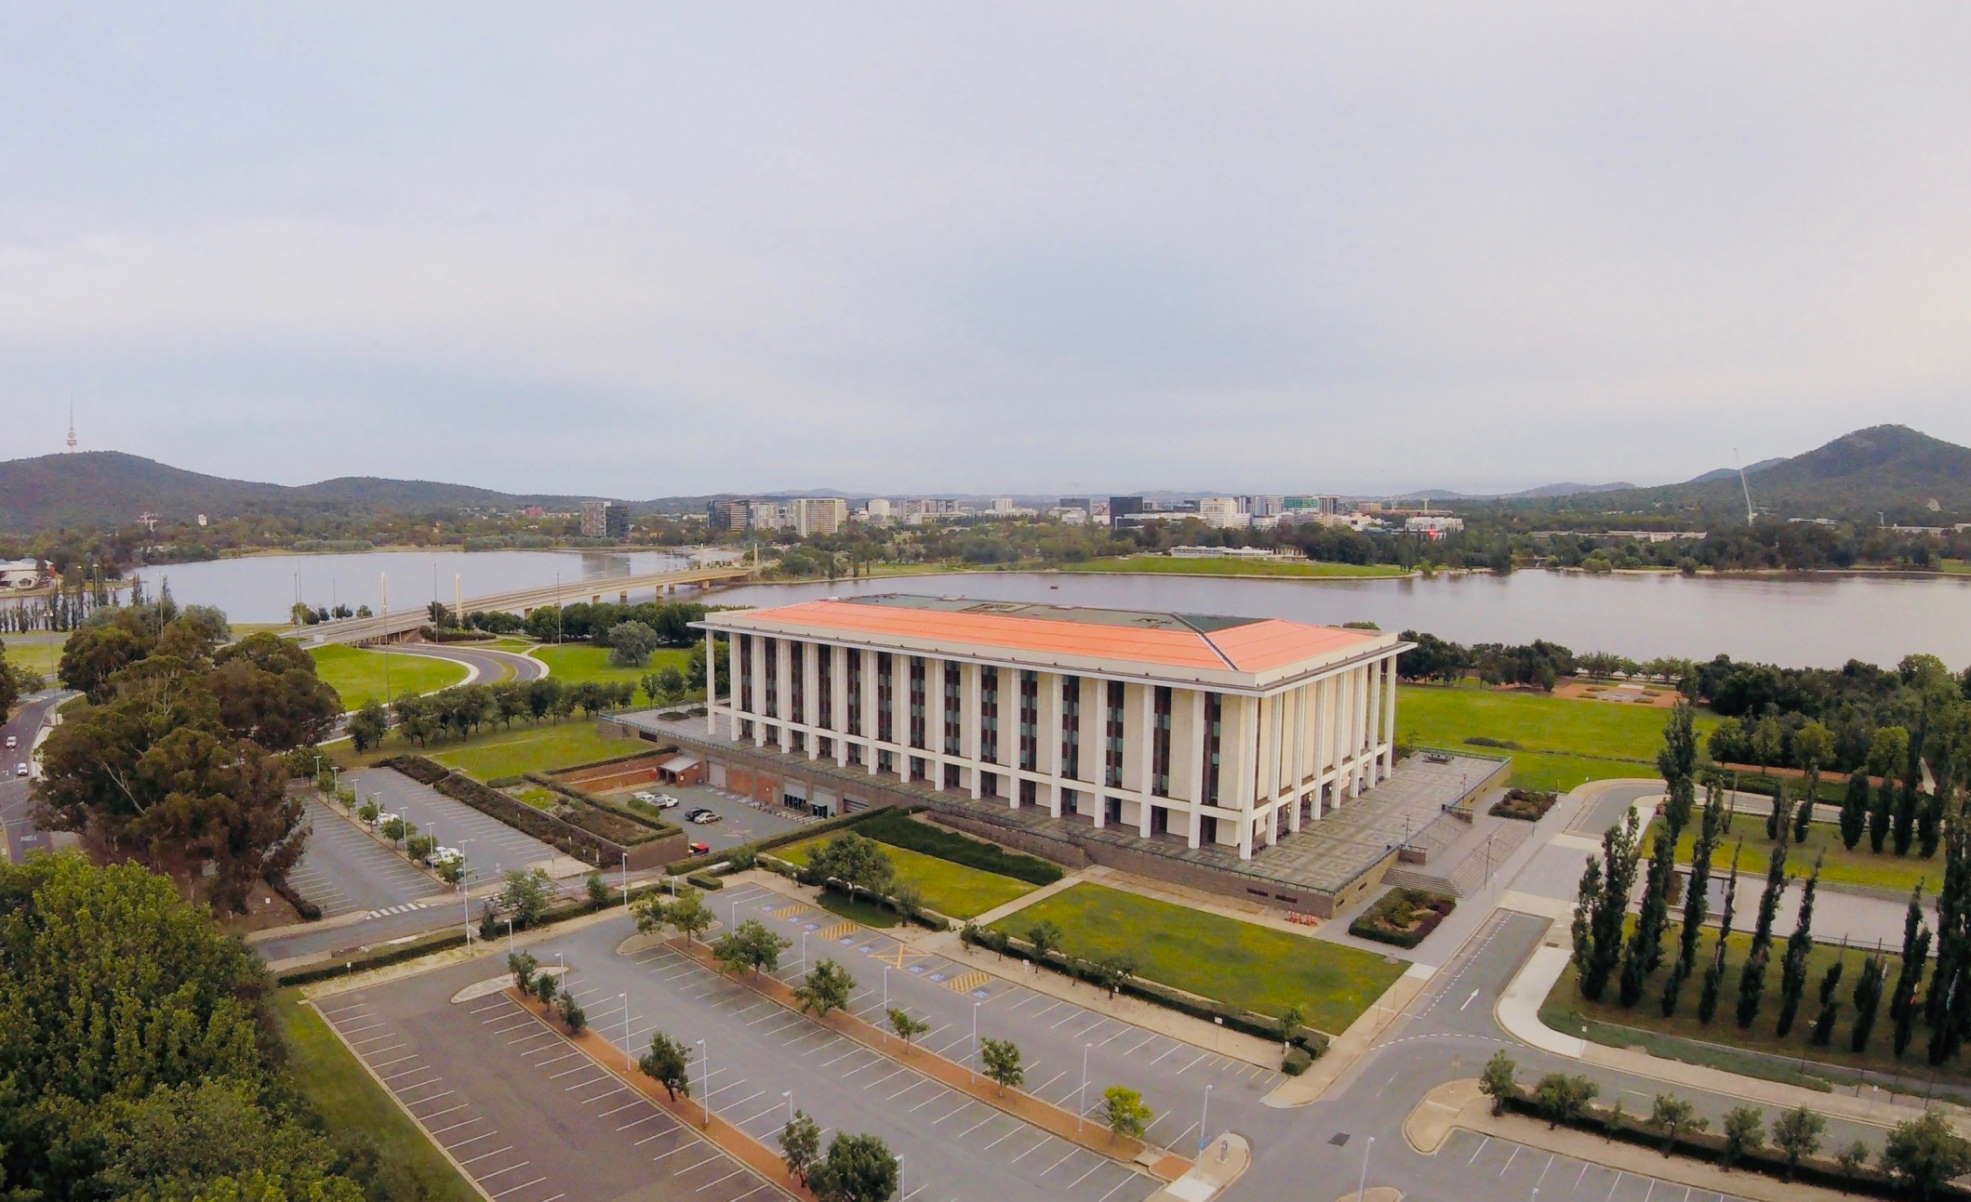 Aerial image of the National Library